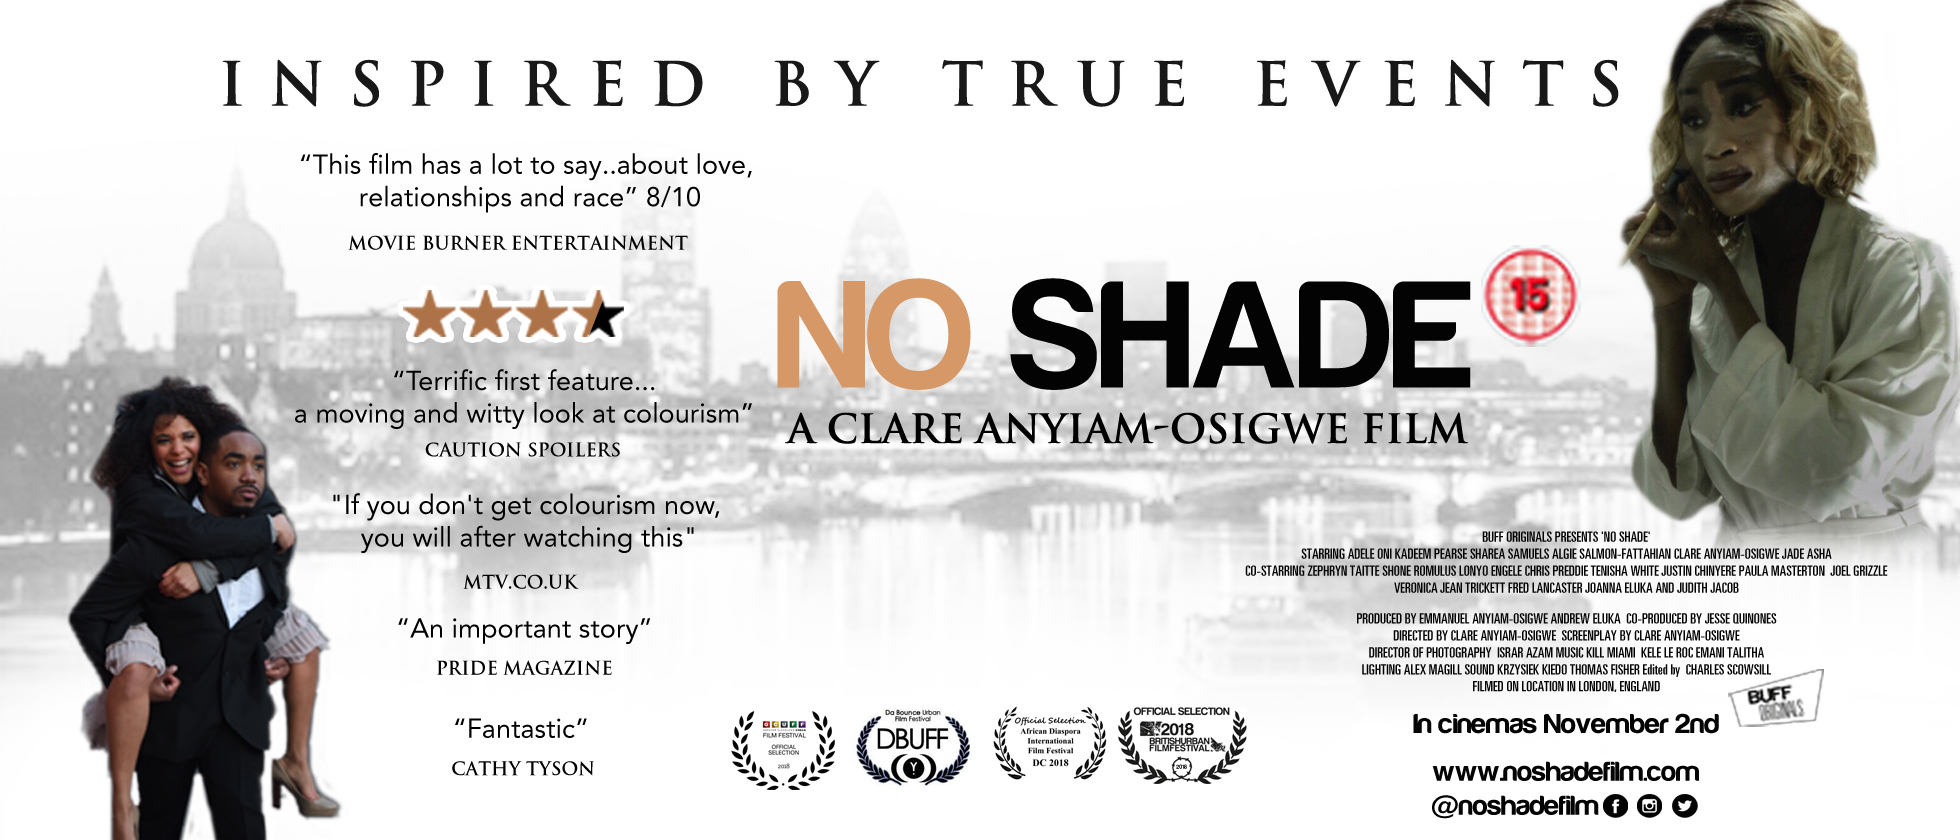 No shade New poster 2